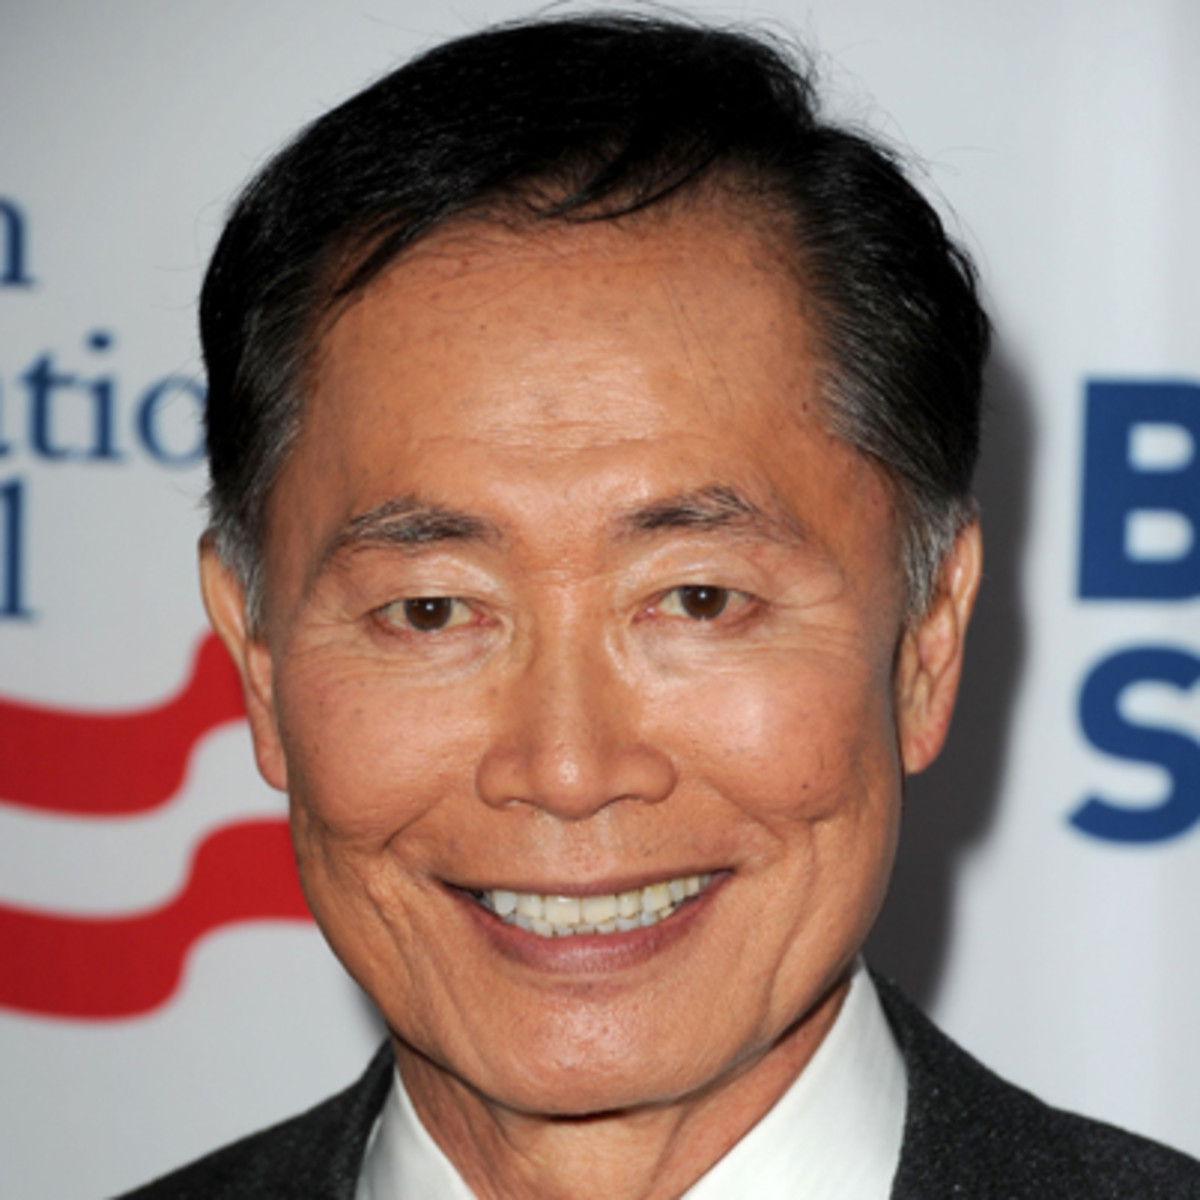 George Takei - Activist, Actor - Biography